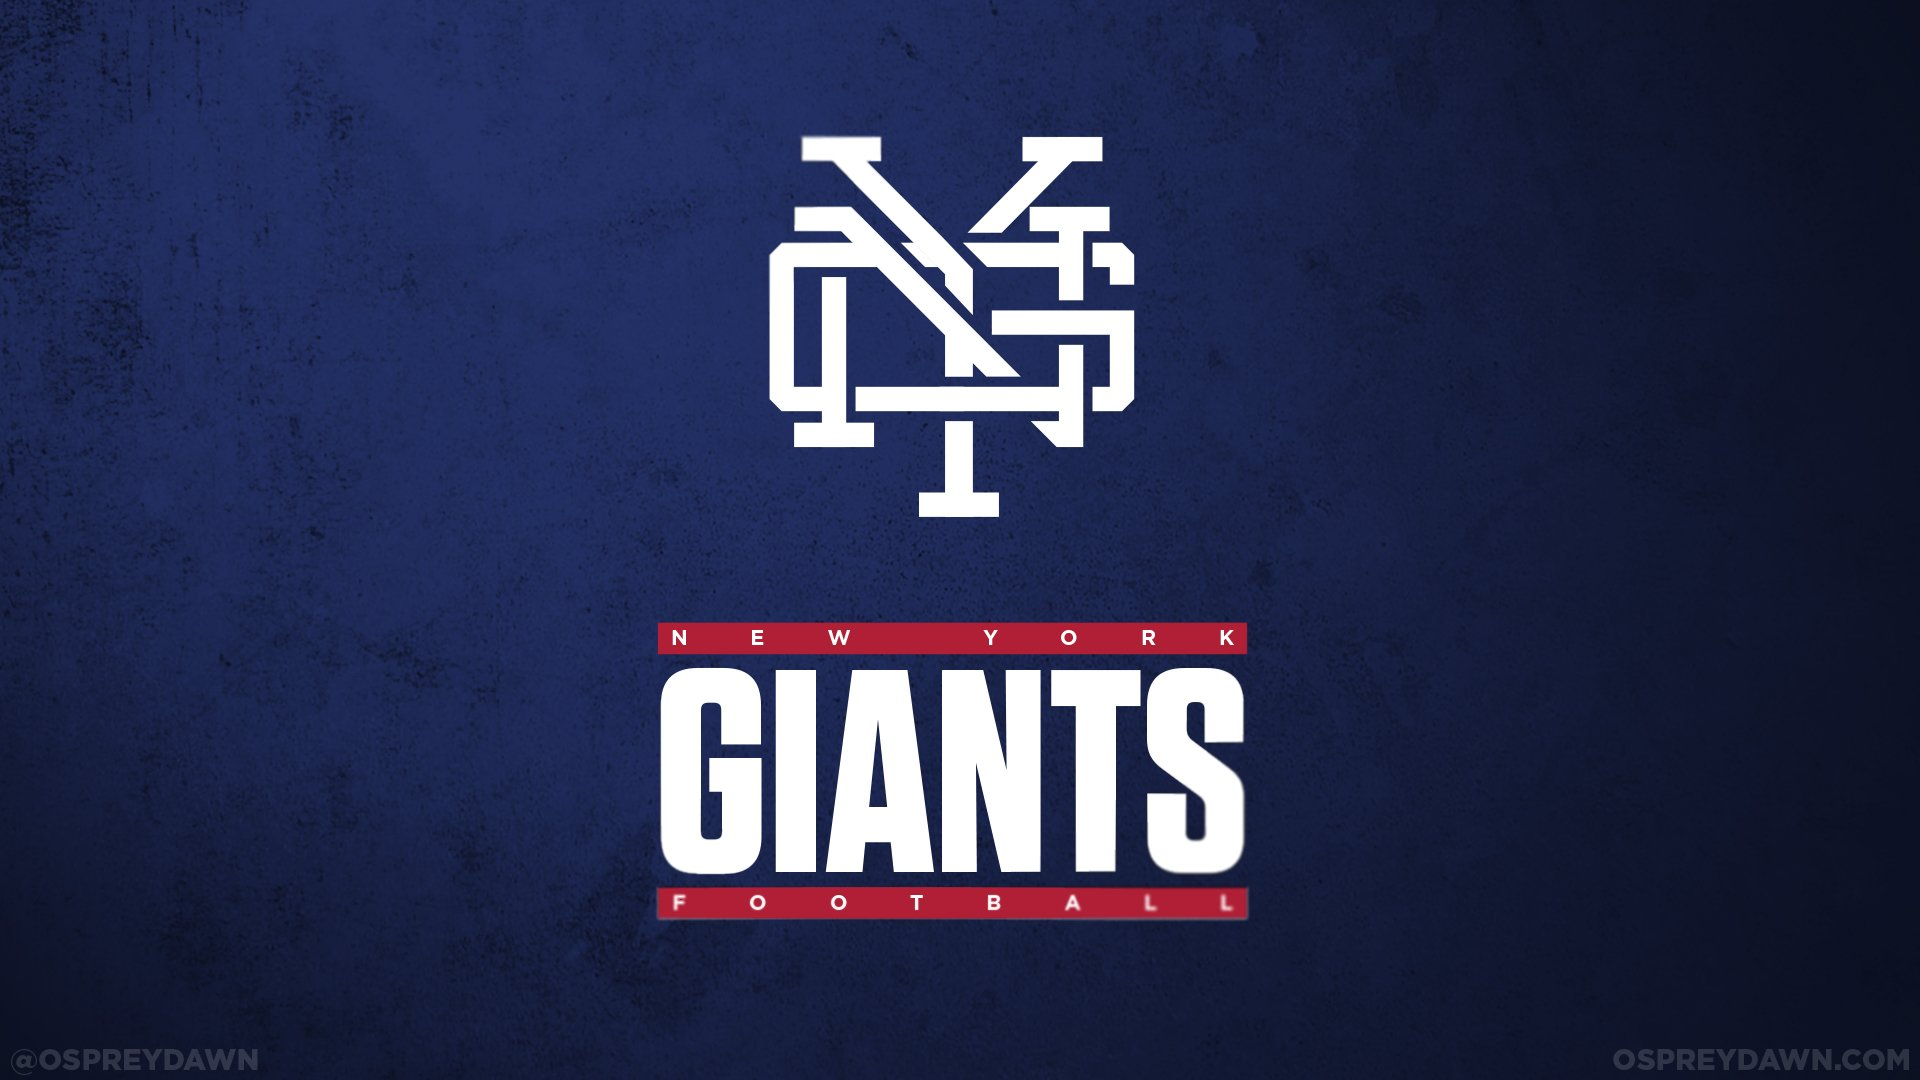 36 New York Giants Hd Wallpapers Background Images Wallpaper Abyss